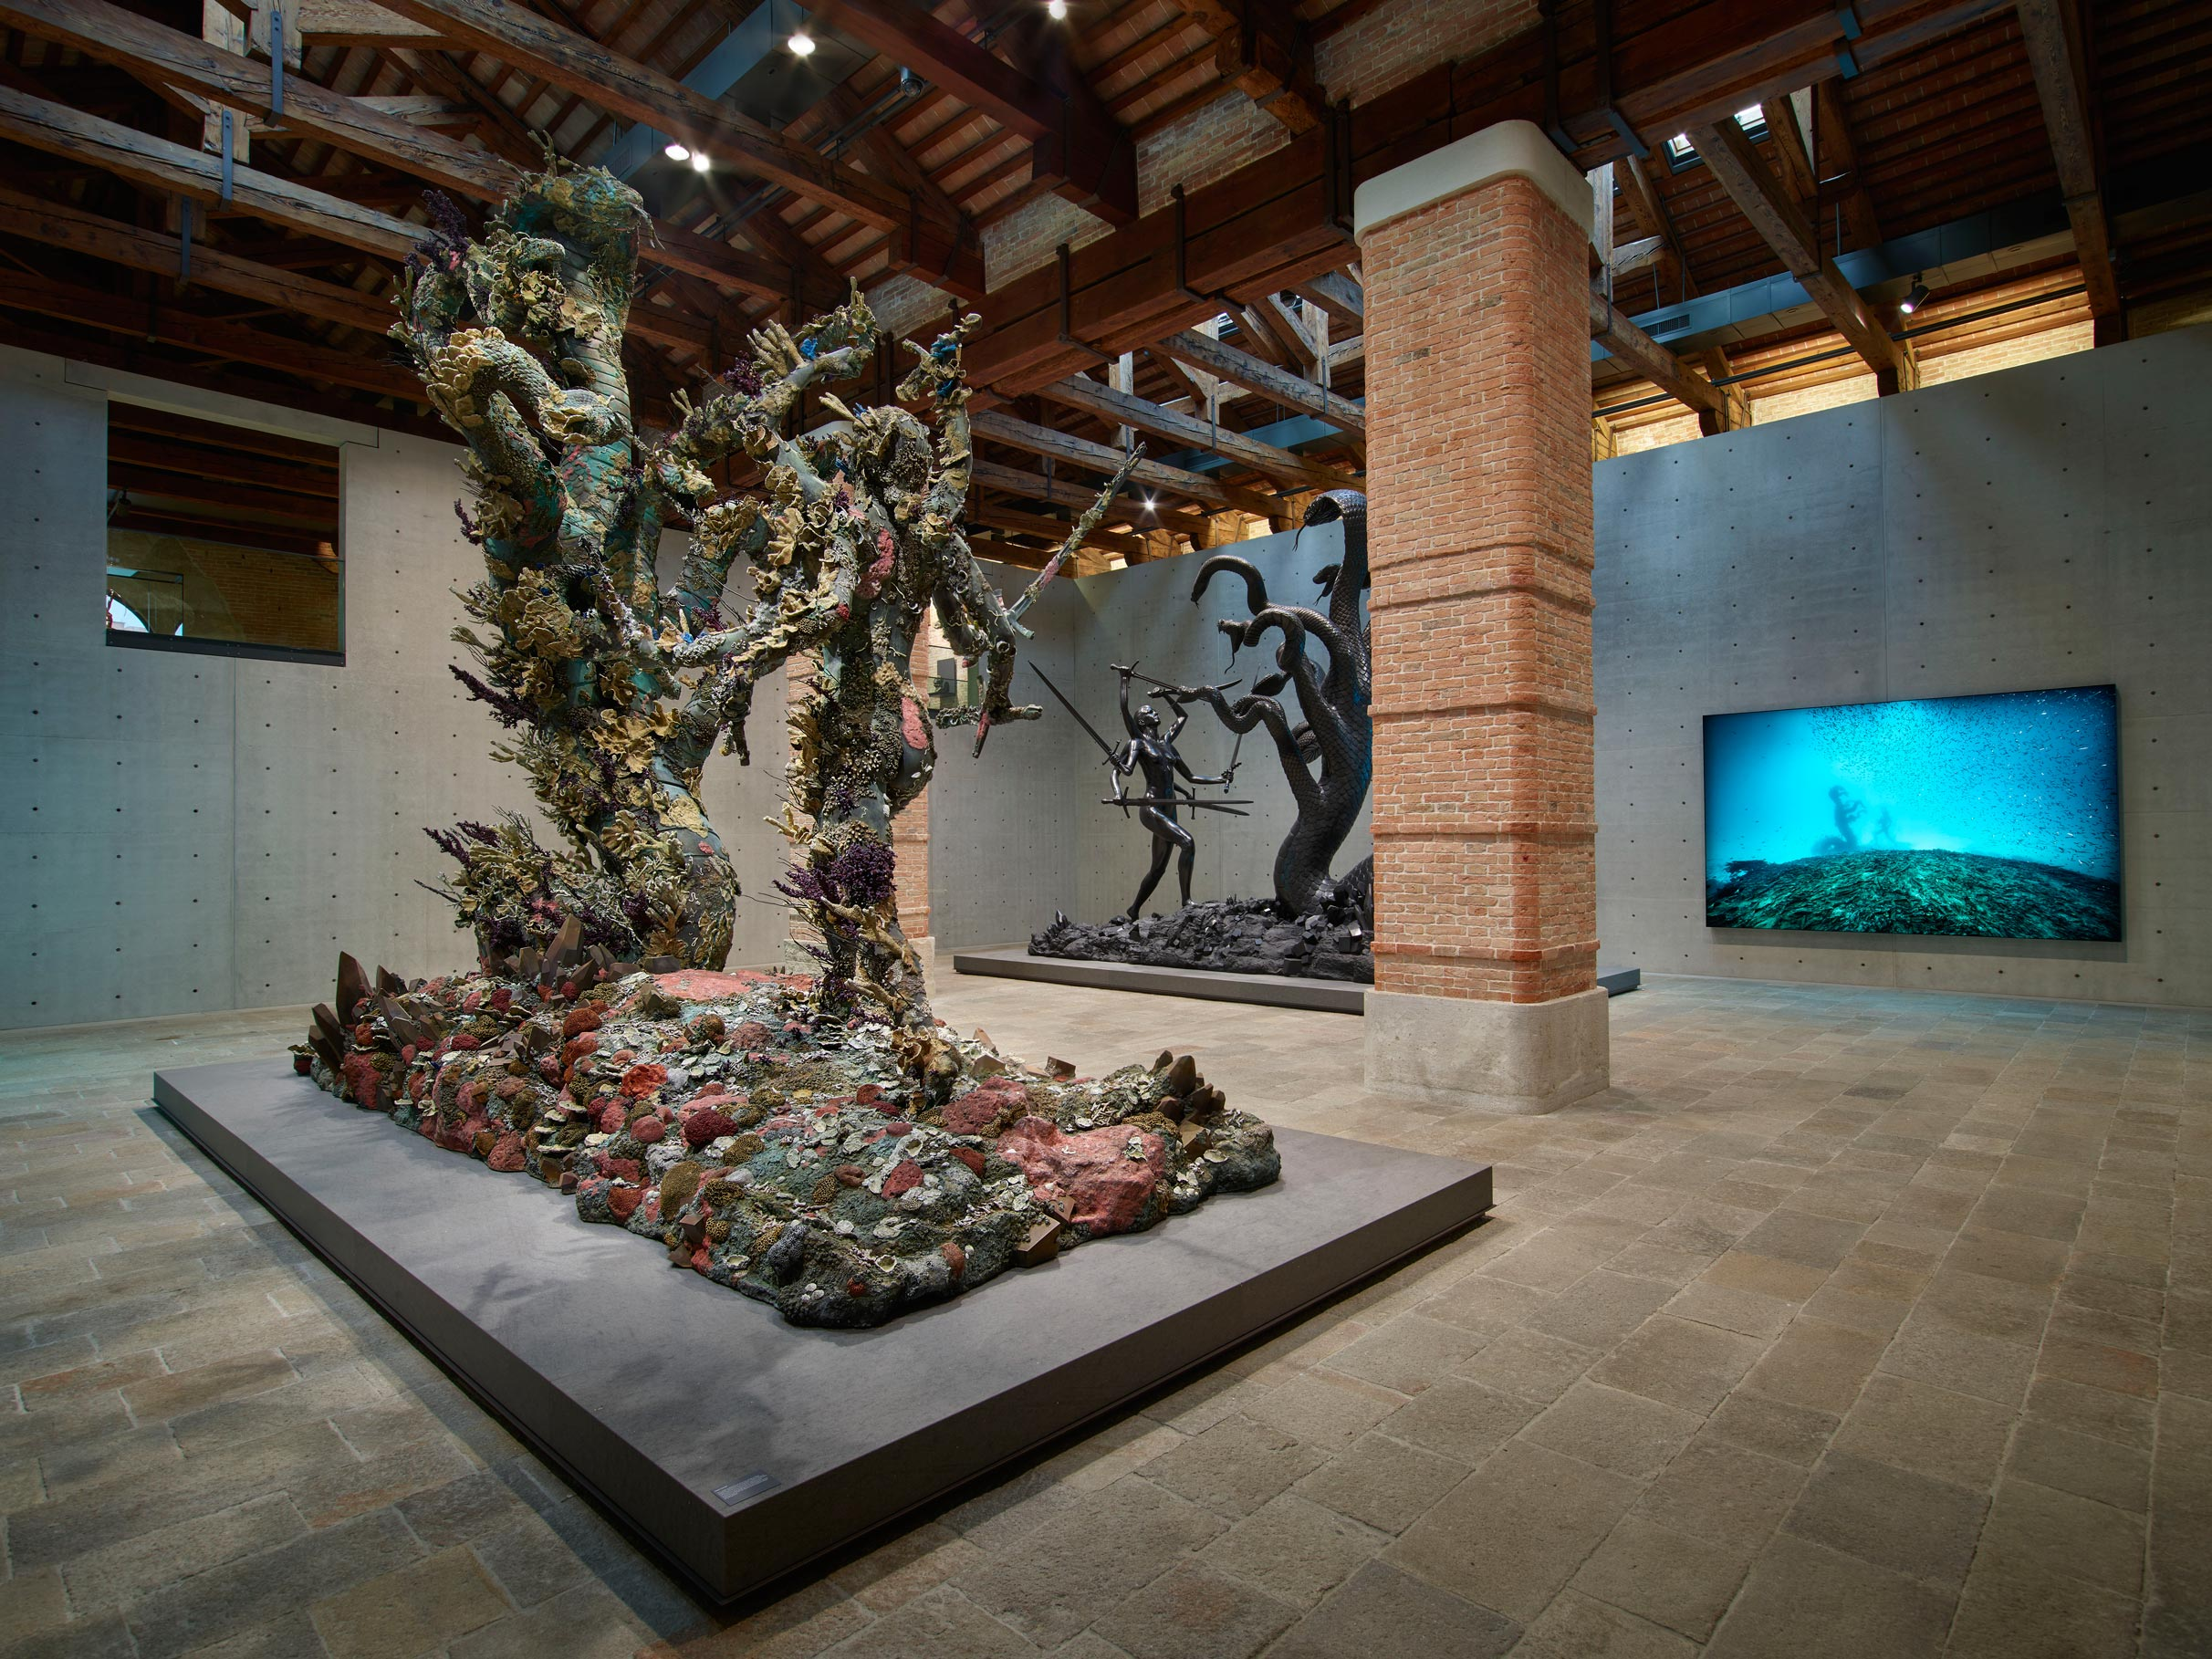 Room 11: